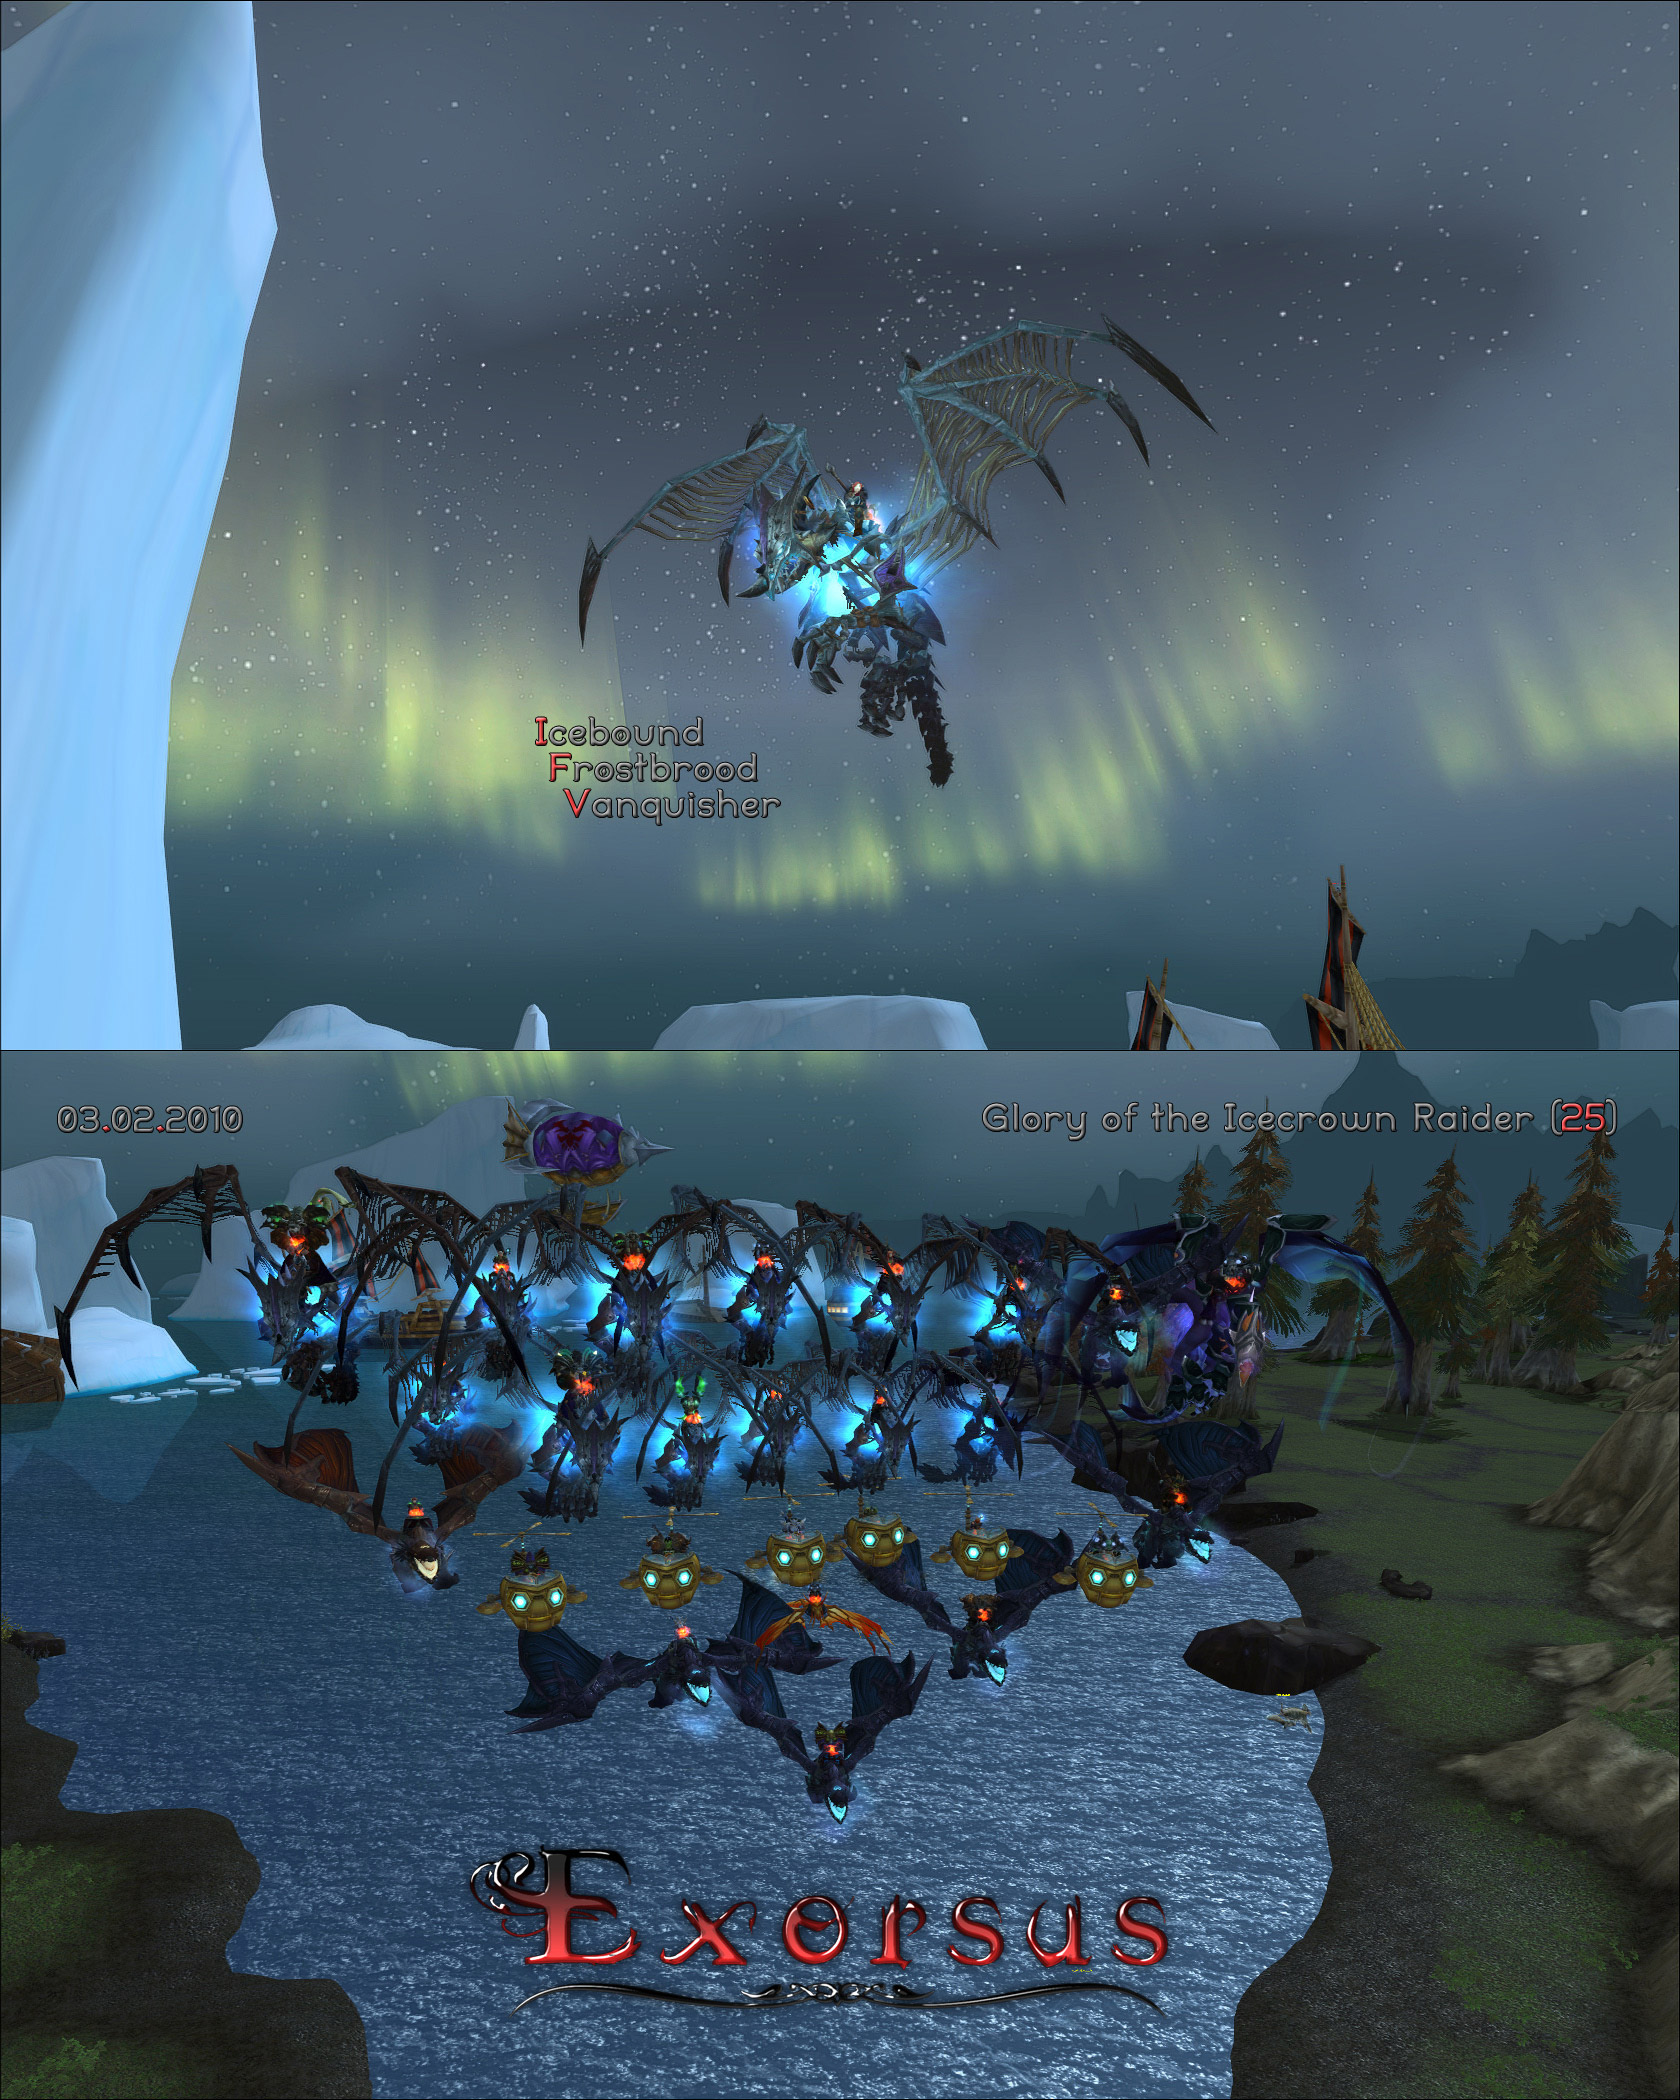 & glory of the icecrown raider guide Charlie?